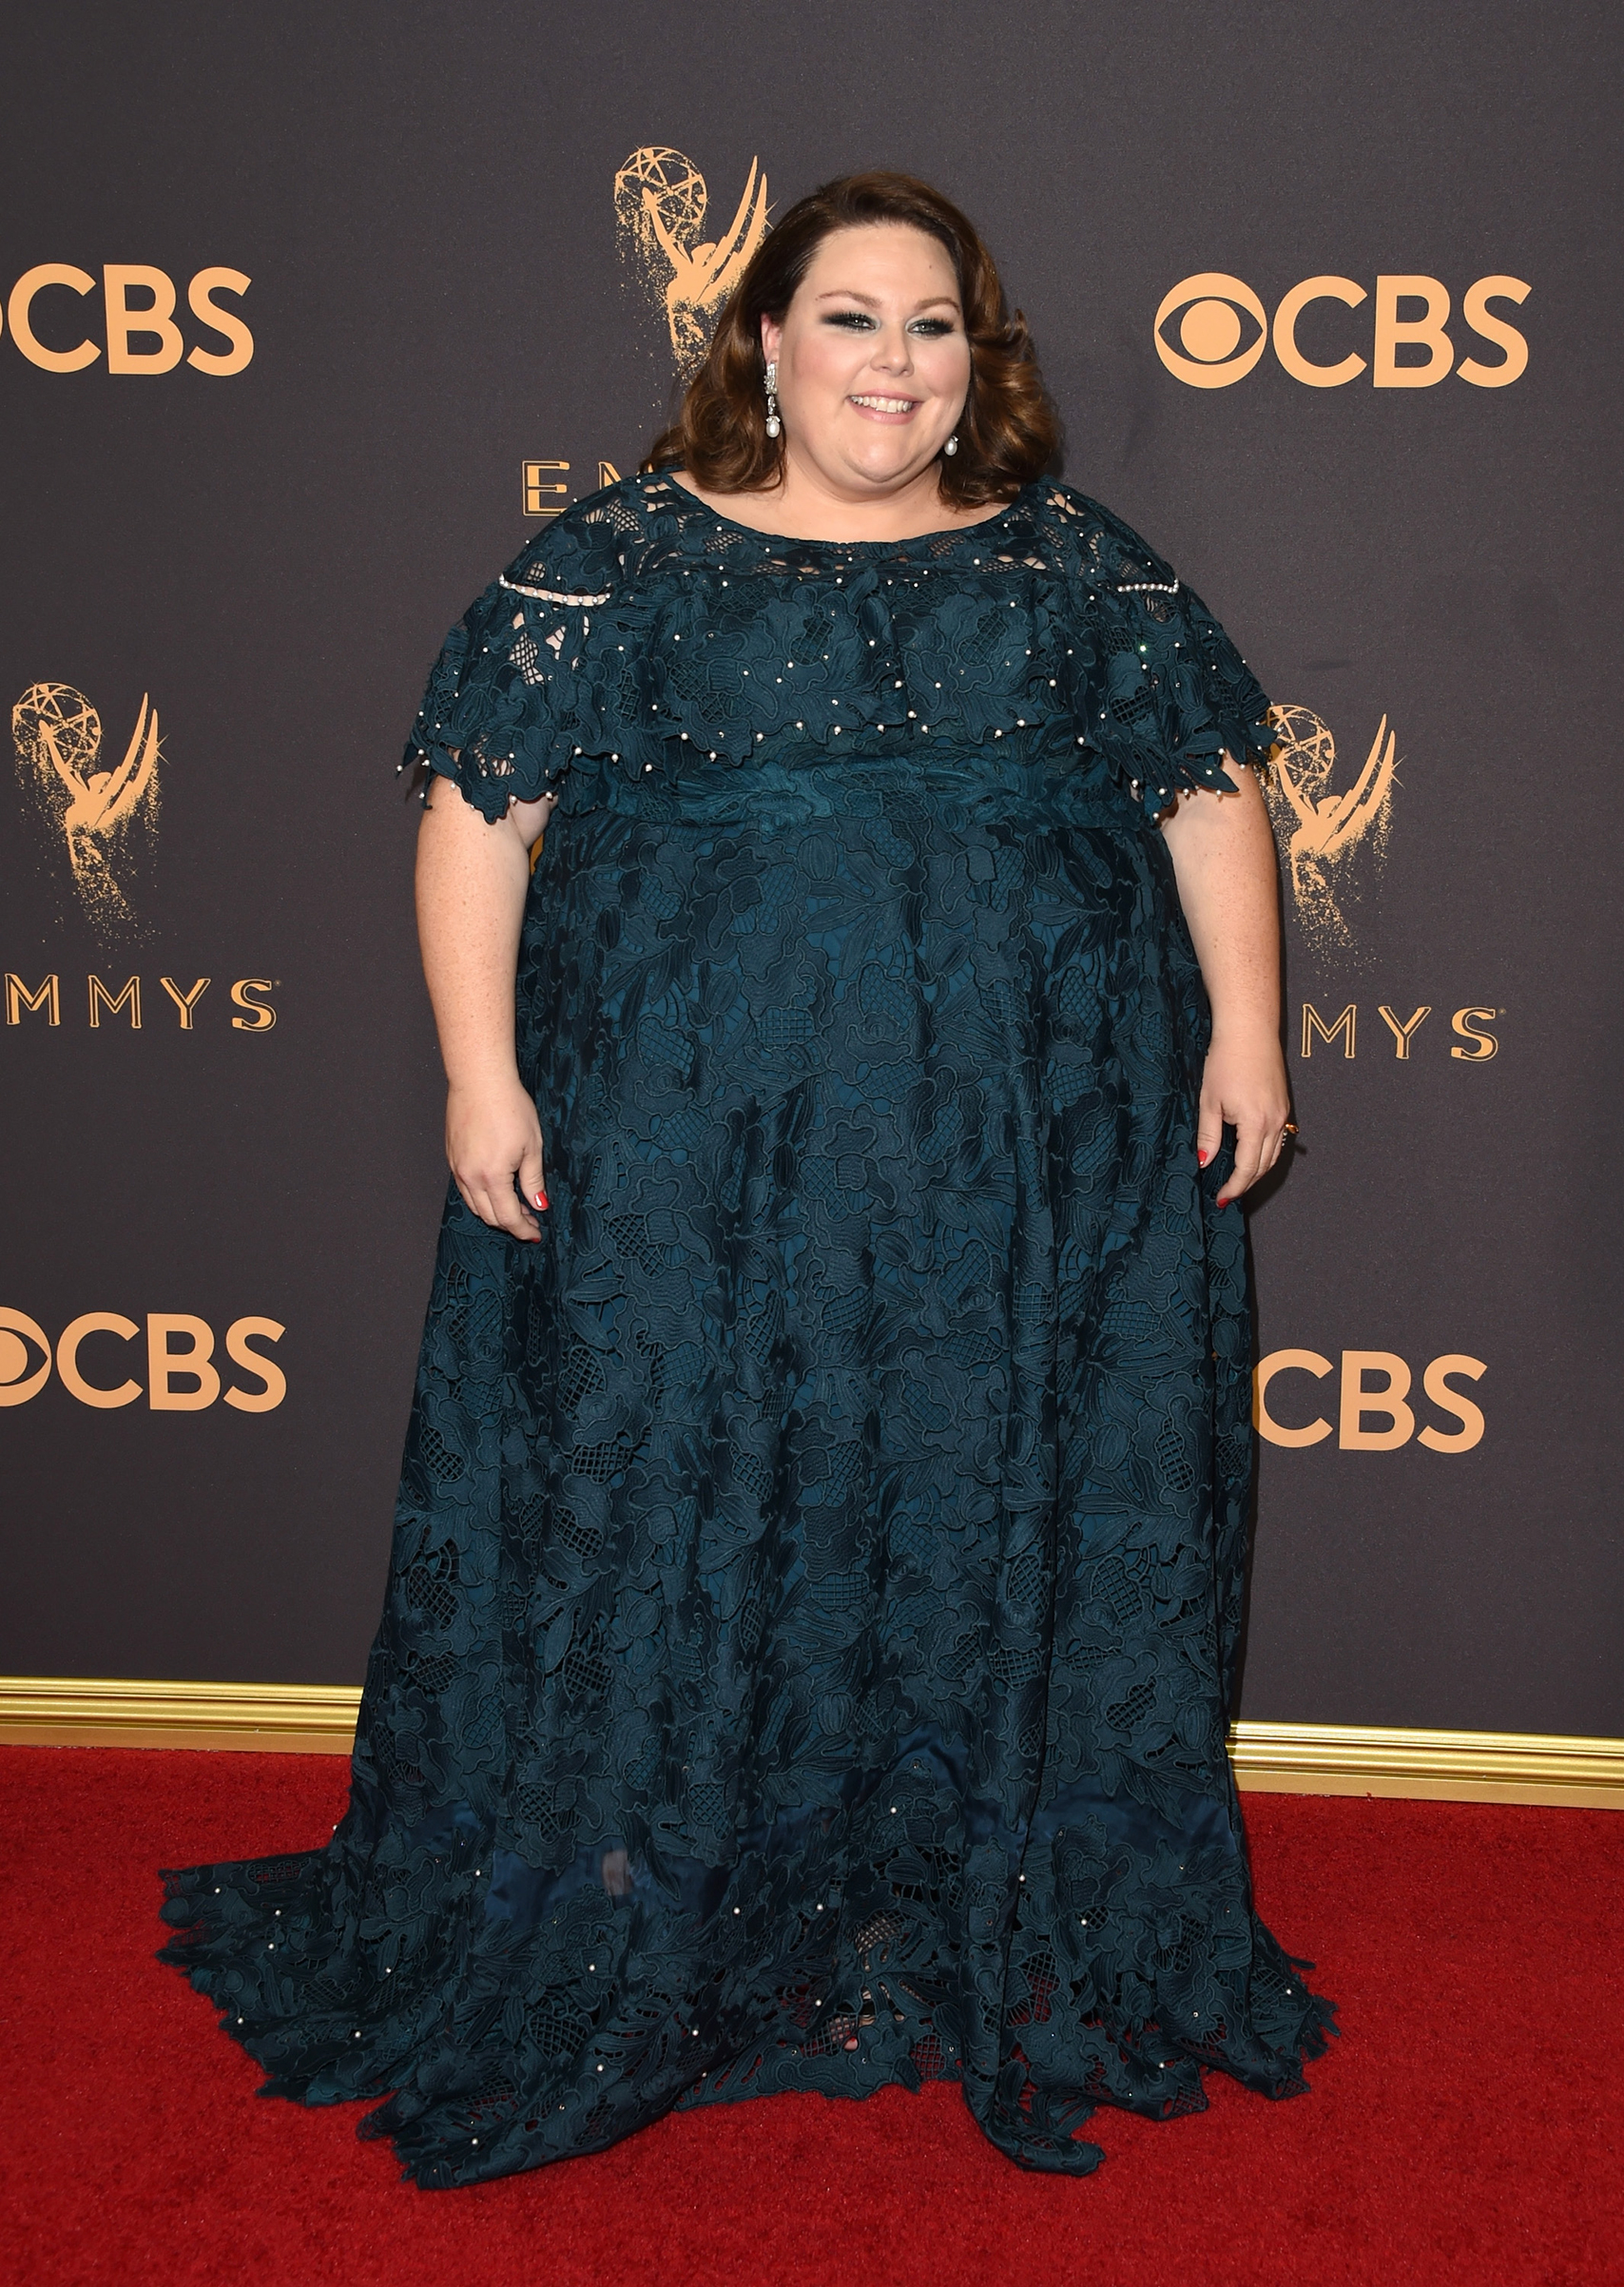 Actor Chrissy Metz attends the 69th Annual Primetime Emmy Awards at Microsoft Theater on September 17, 2017 in Los Angeles, California.